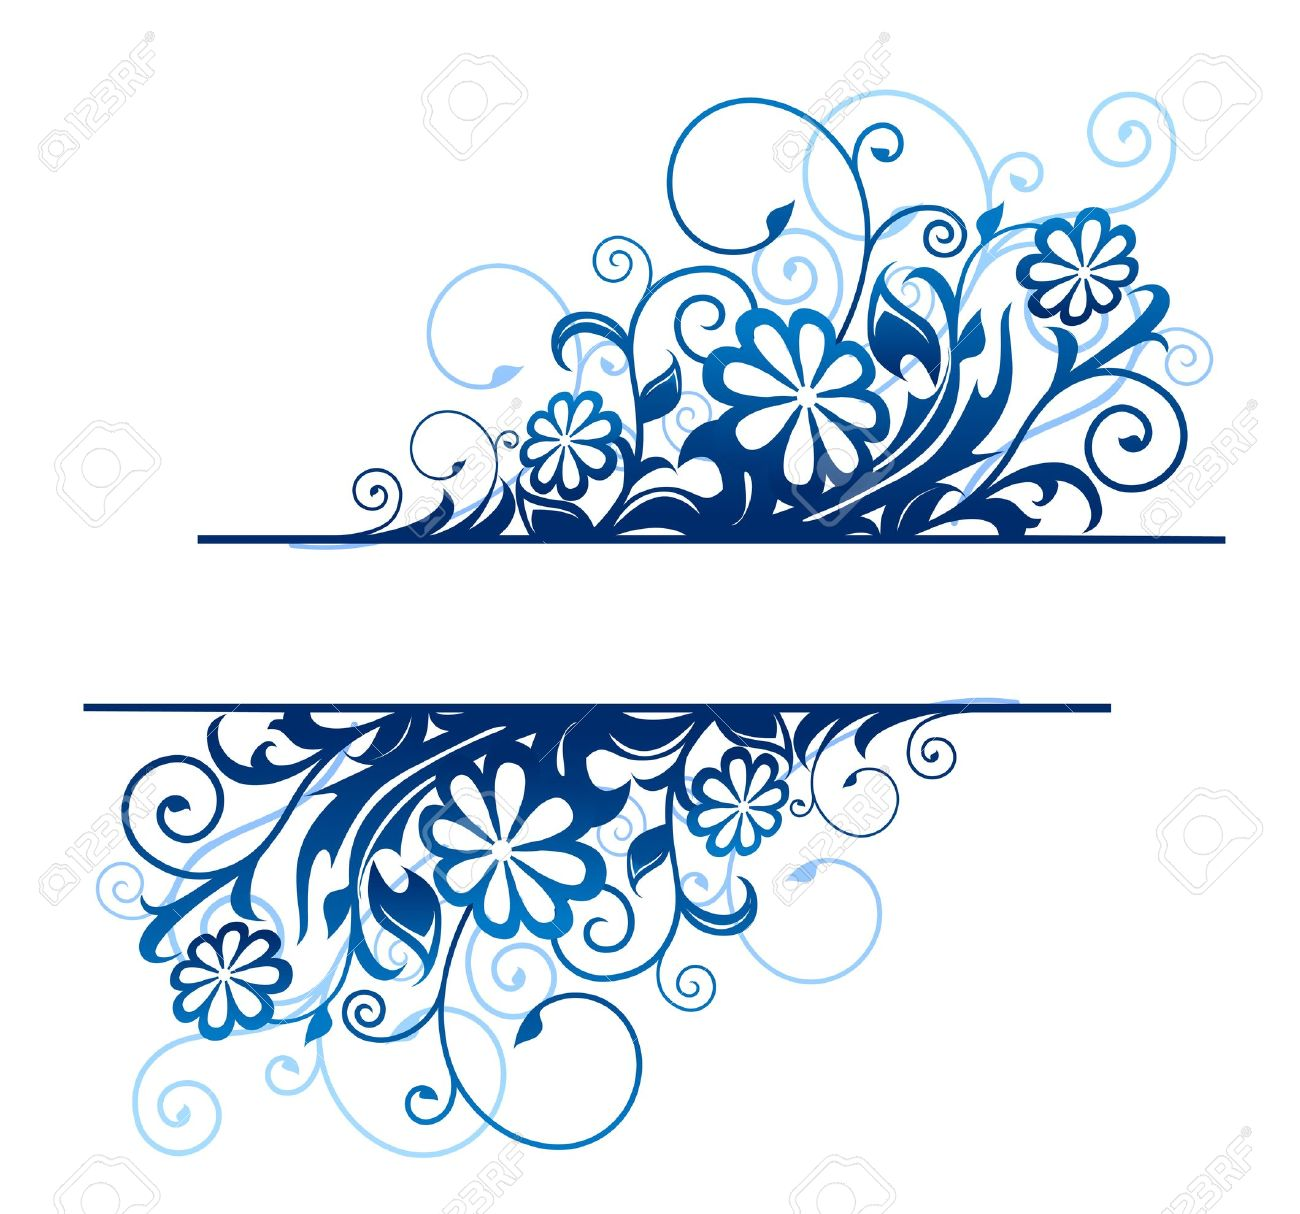 Blue floral borders with flowers and blossoms Stock Vector - 11976446